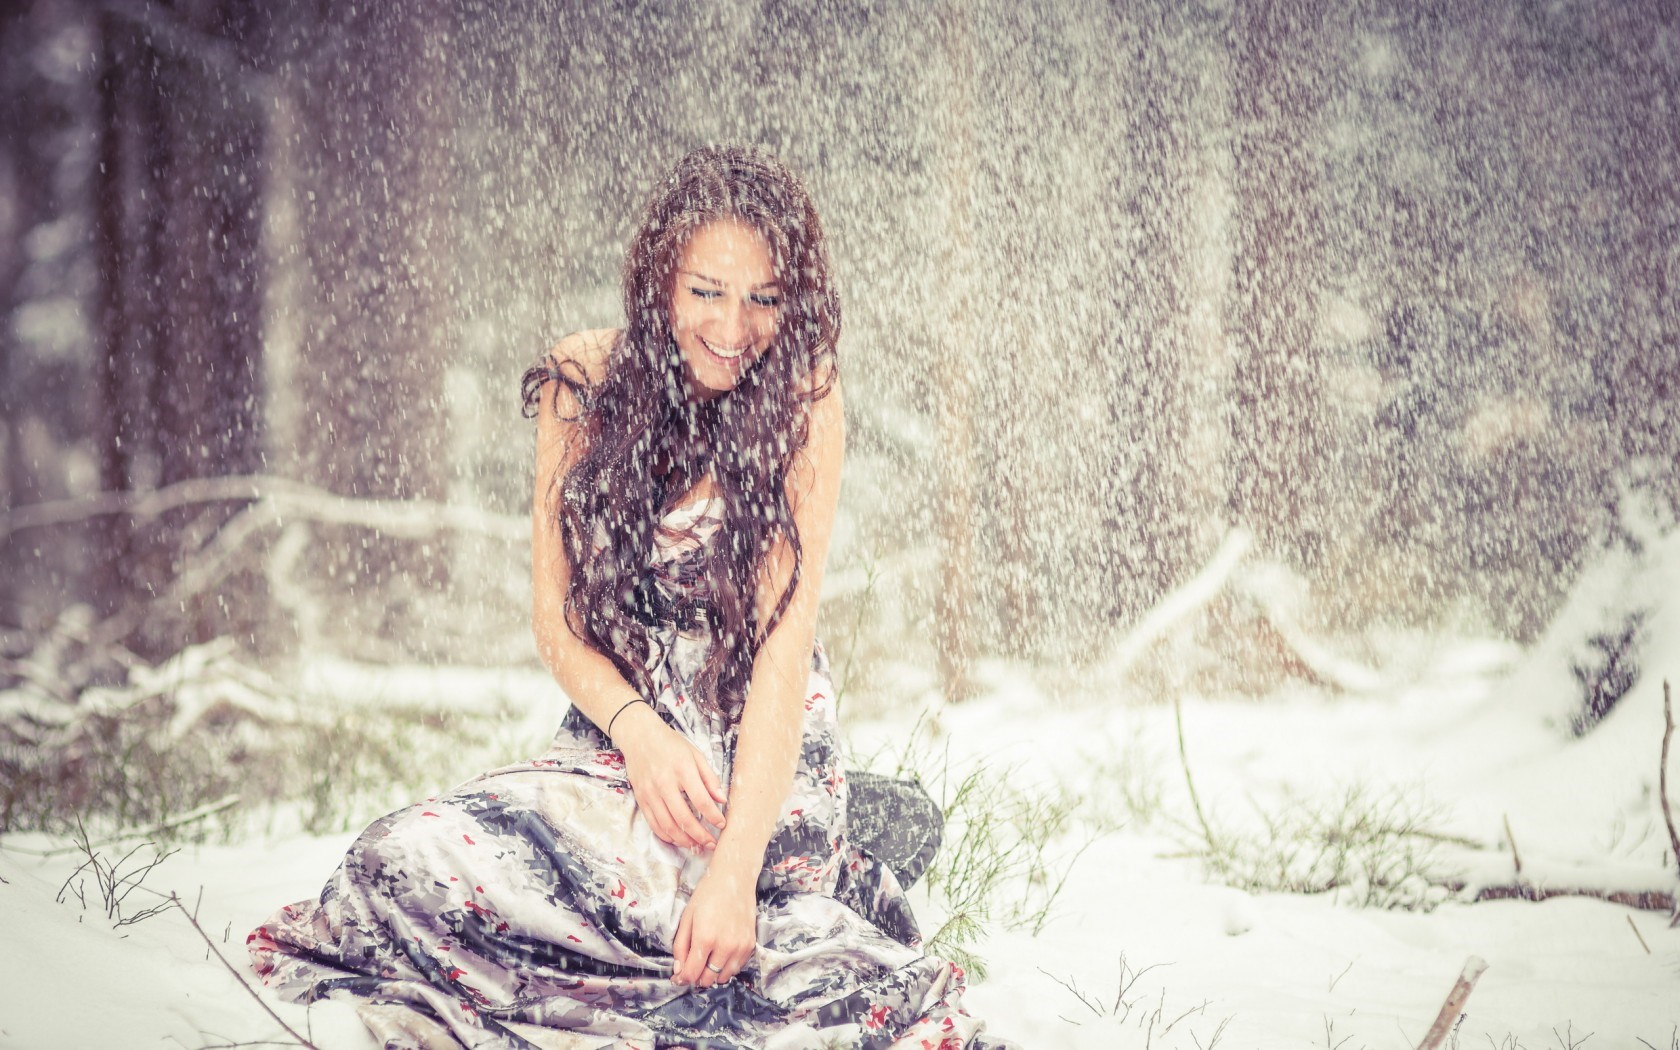 Girl Winter Snow Snowflakes